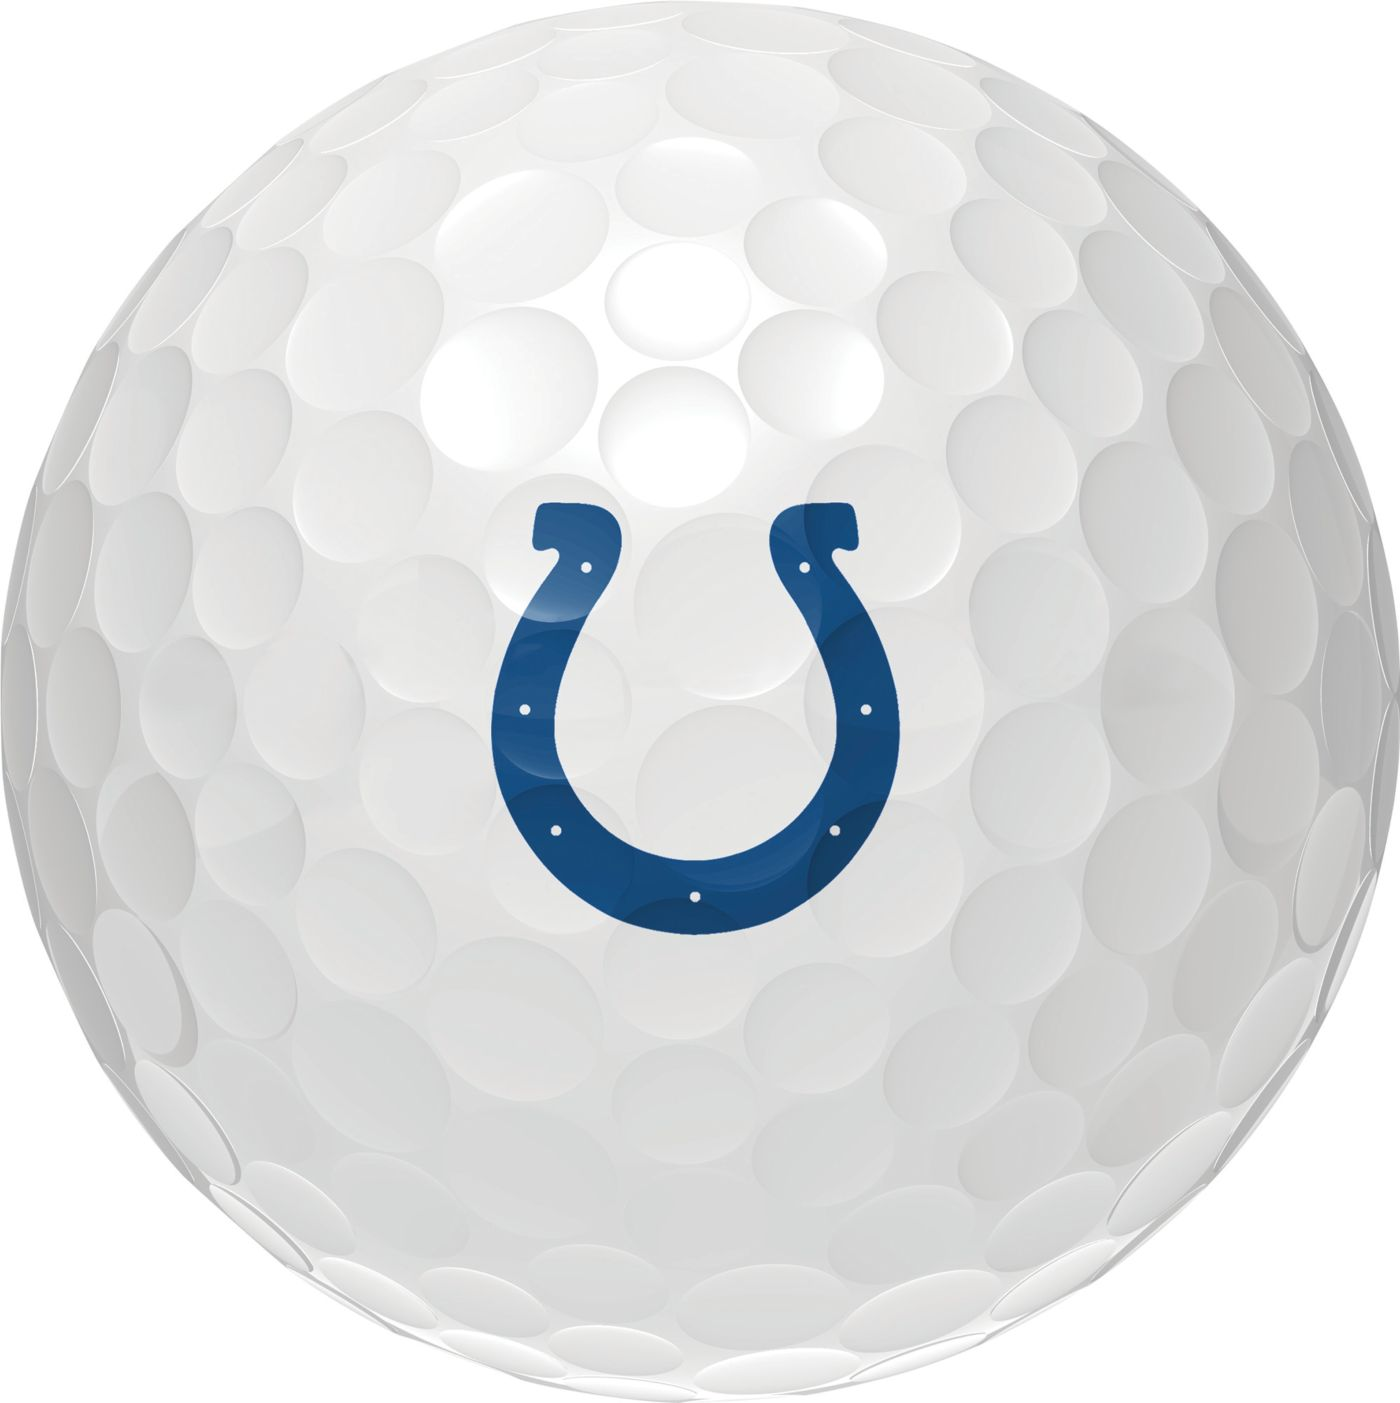 Wilson Staff Duo Soft Indianapolis Colts Golf Balls